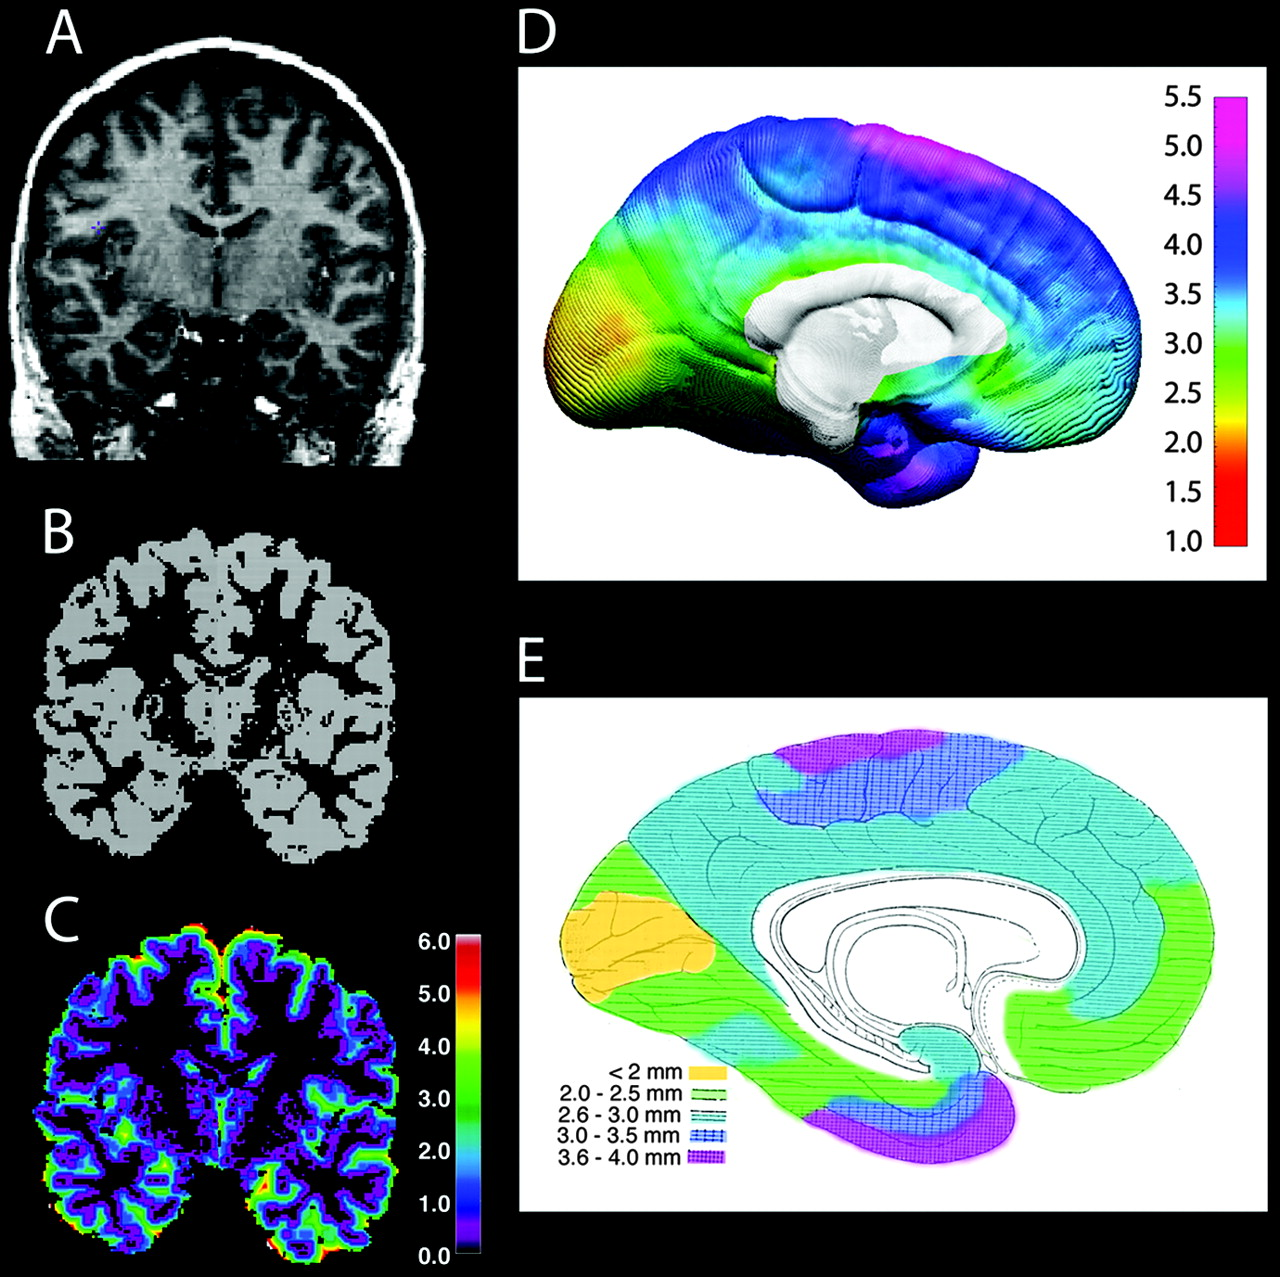 Childrens and adults cerebral cortex